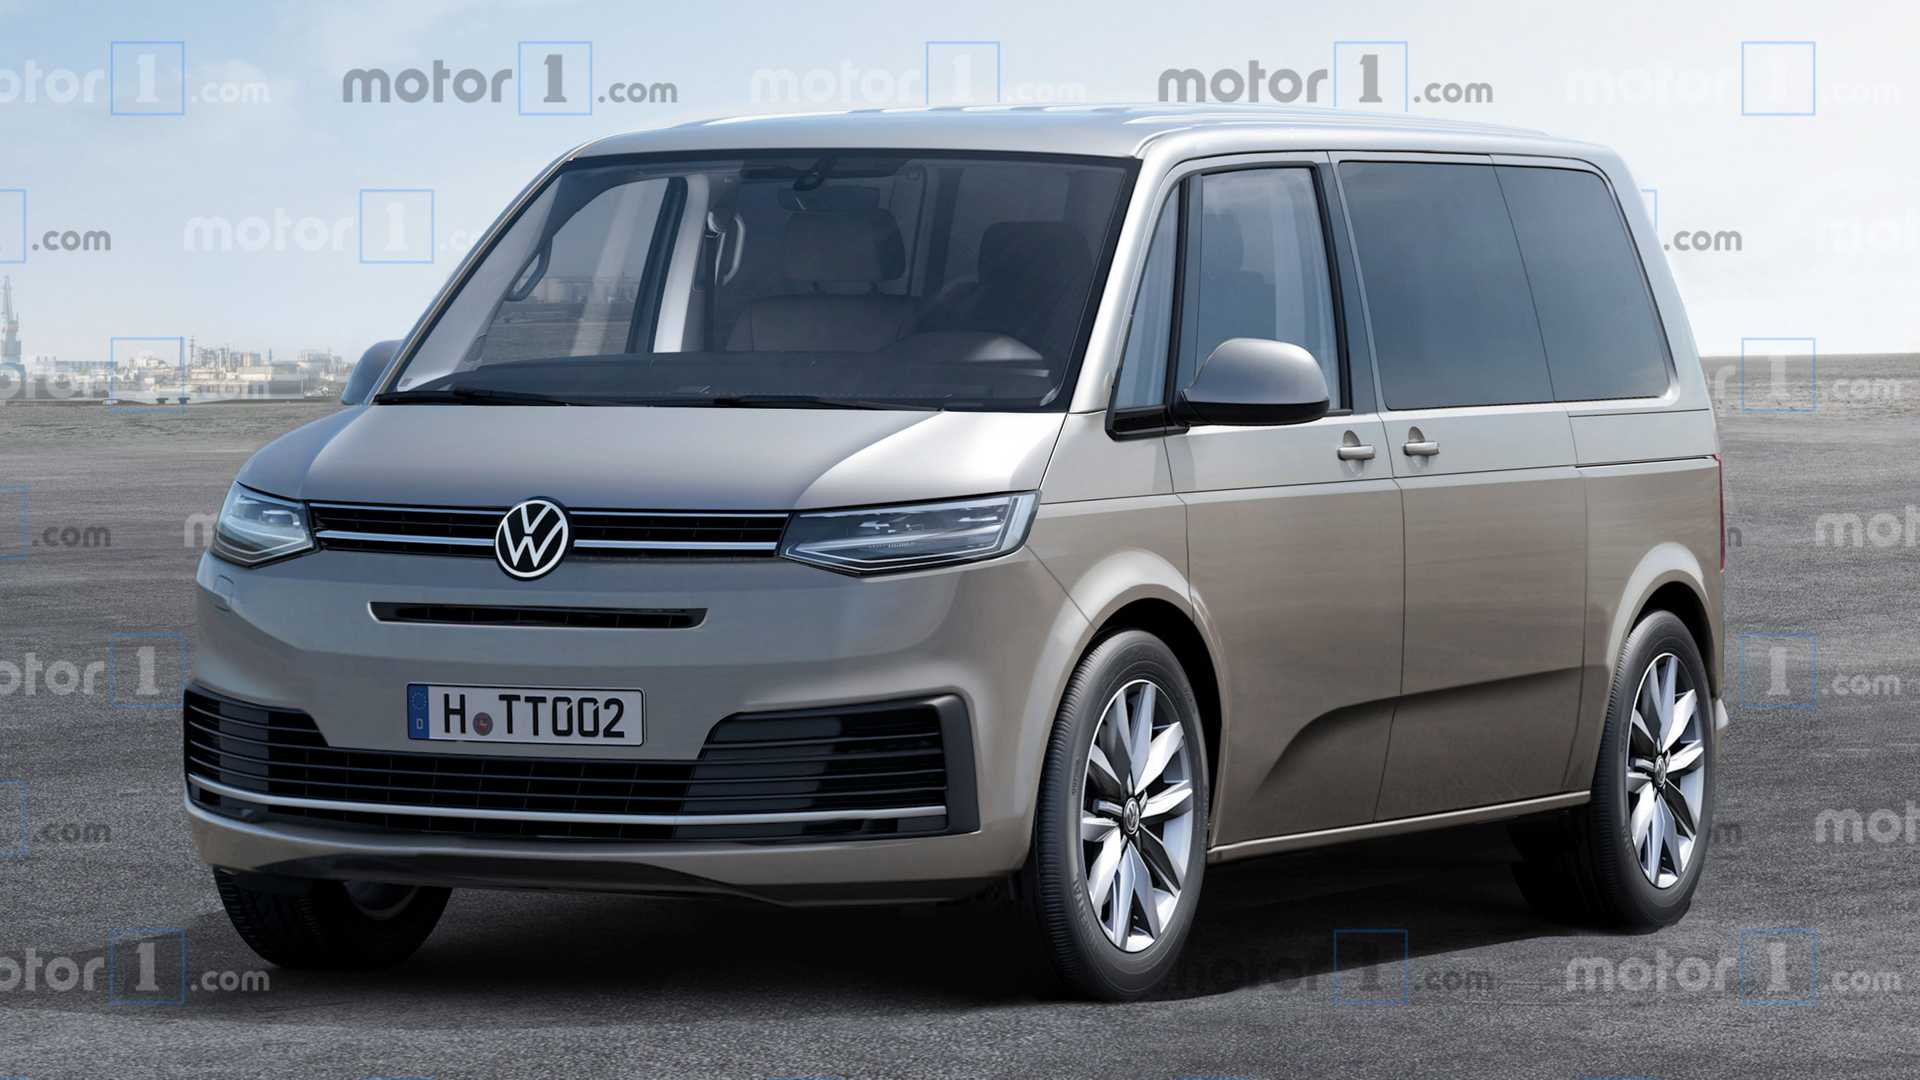 2021 volkswagen microbus images, launch date, length